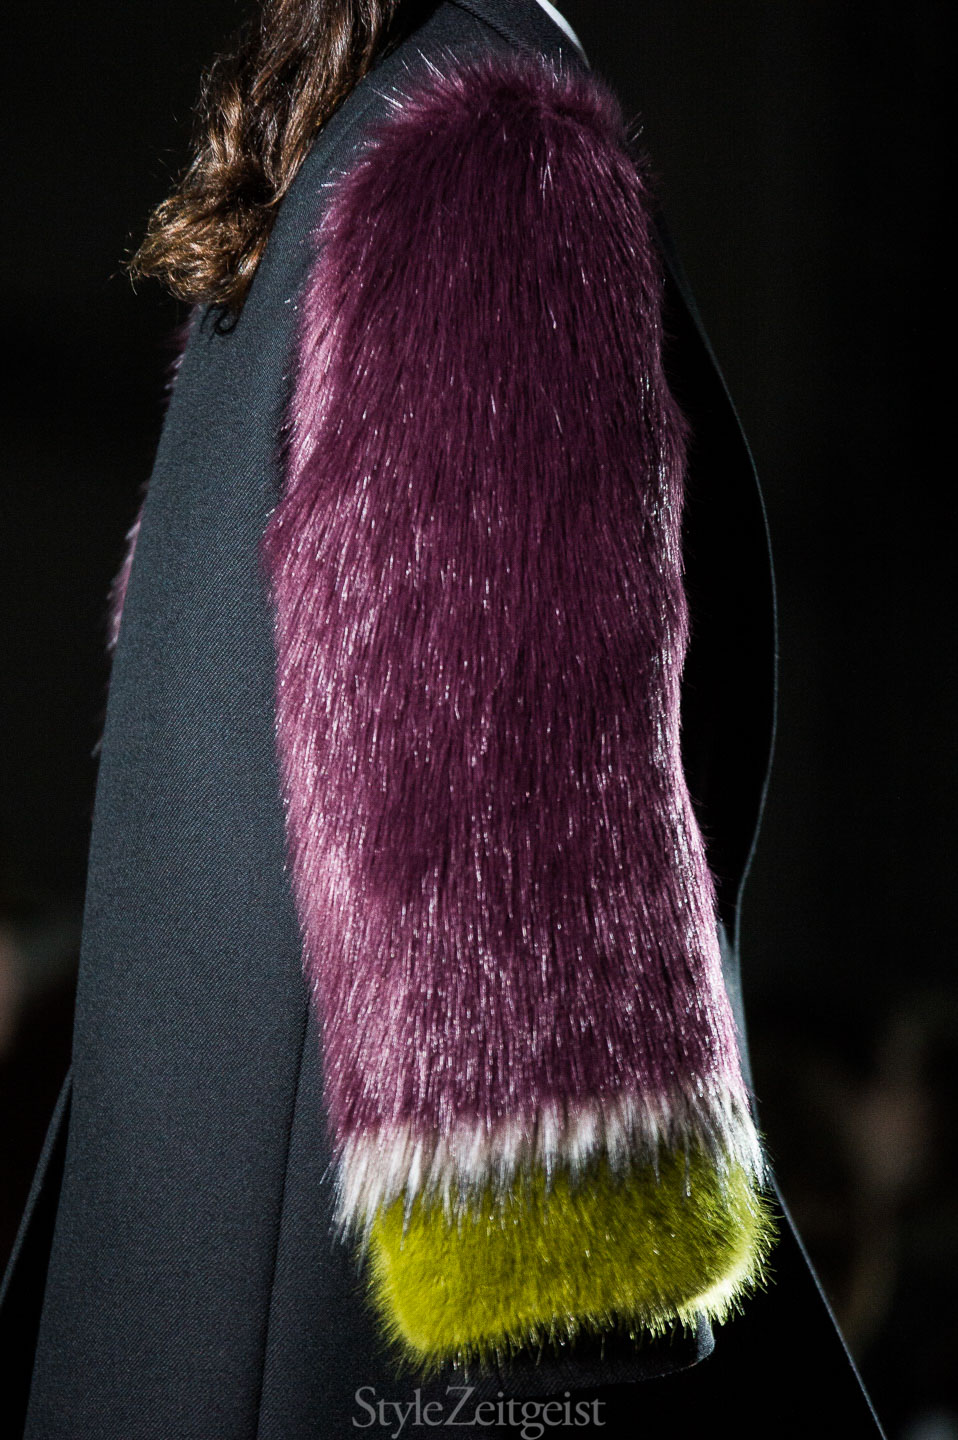 StyleZeitgeist Dries Van Noten F/W17 Women's - Paris Fashion    StyleZeitgeist Dries Van Noten F/W17 Women's - Paris Fashion    StyleZeitgeist Dries Van Noten F/W17 Women's - Paris Fashion    StyleZeitgeist Dries Van Noten F/W17 Women's - Paris Fashion    StyleZeitgeist Dries Van Noten F/W17 Women's - Paris Fashion    StyleZeitgeist Dries Van Noten F/W17 Women's - Paris Fashion    StyleZeitgeist Dries Van Noten F/W17 Women's - Paris Fashion    StyleZeitgeist Dries Van Noten F/W17 Women's - Paris Fashion    StyleZeitgeist Dries Van Noten F/W17 Women's - Paris Fashion    StyleZeitgeist Dries Van Noten F/W17 Women's - Paris Fashion    StyleZeitgeist Dries Van Noten F/W17 Women's - Paris Fashion